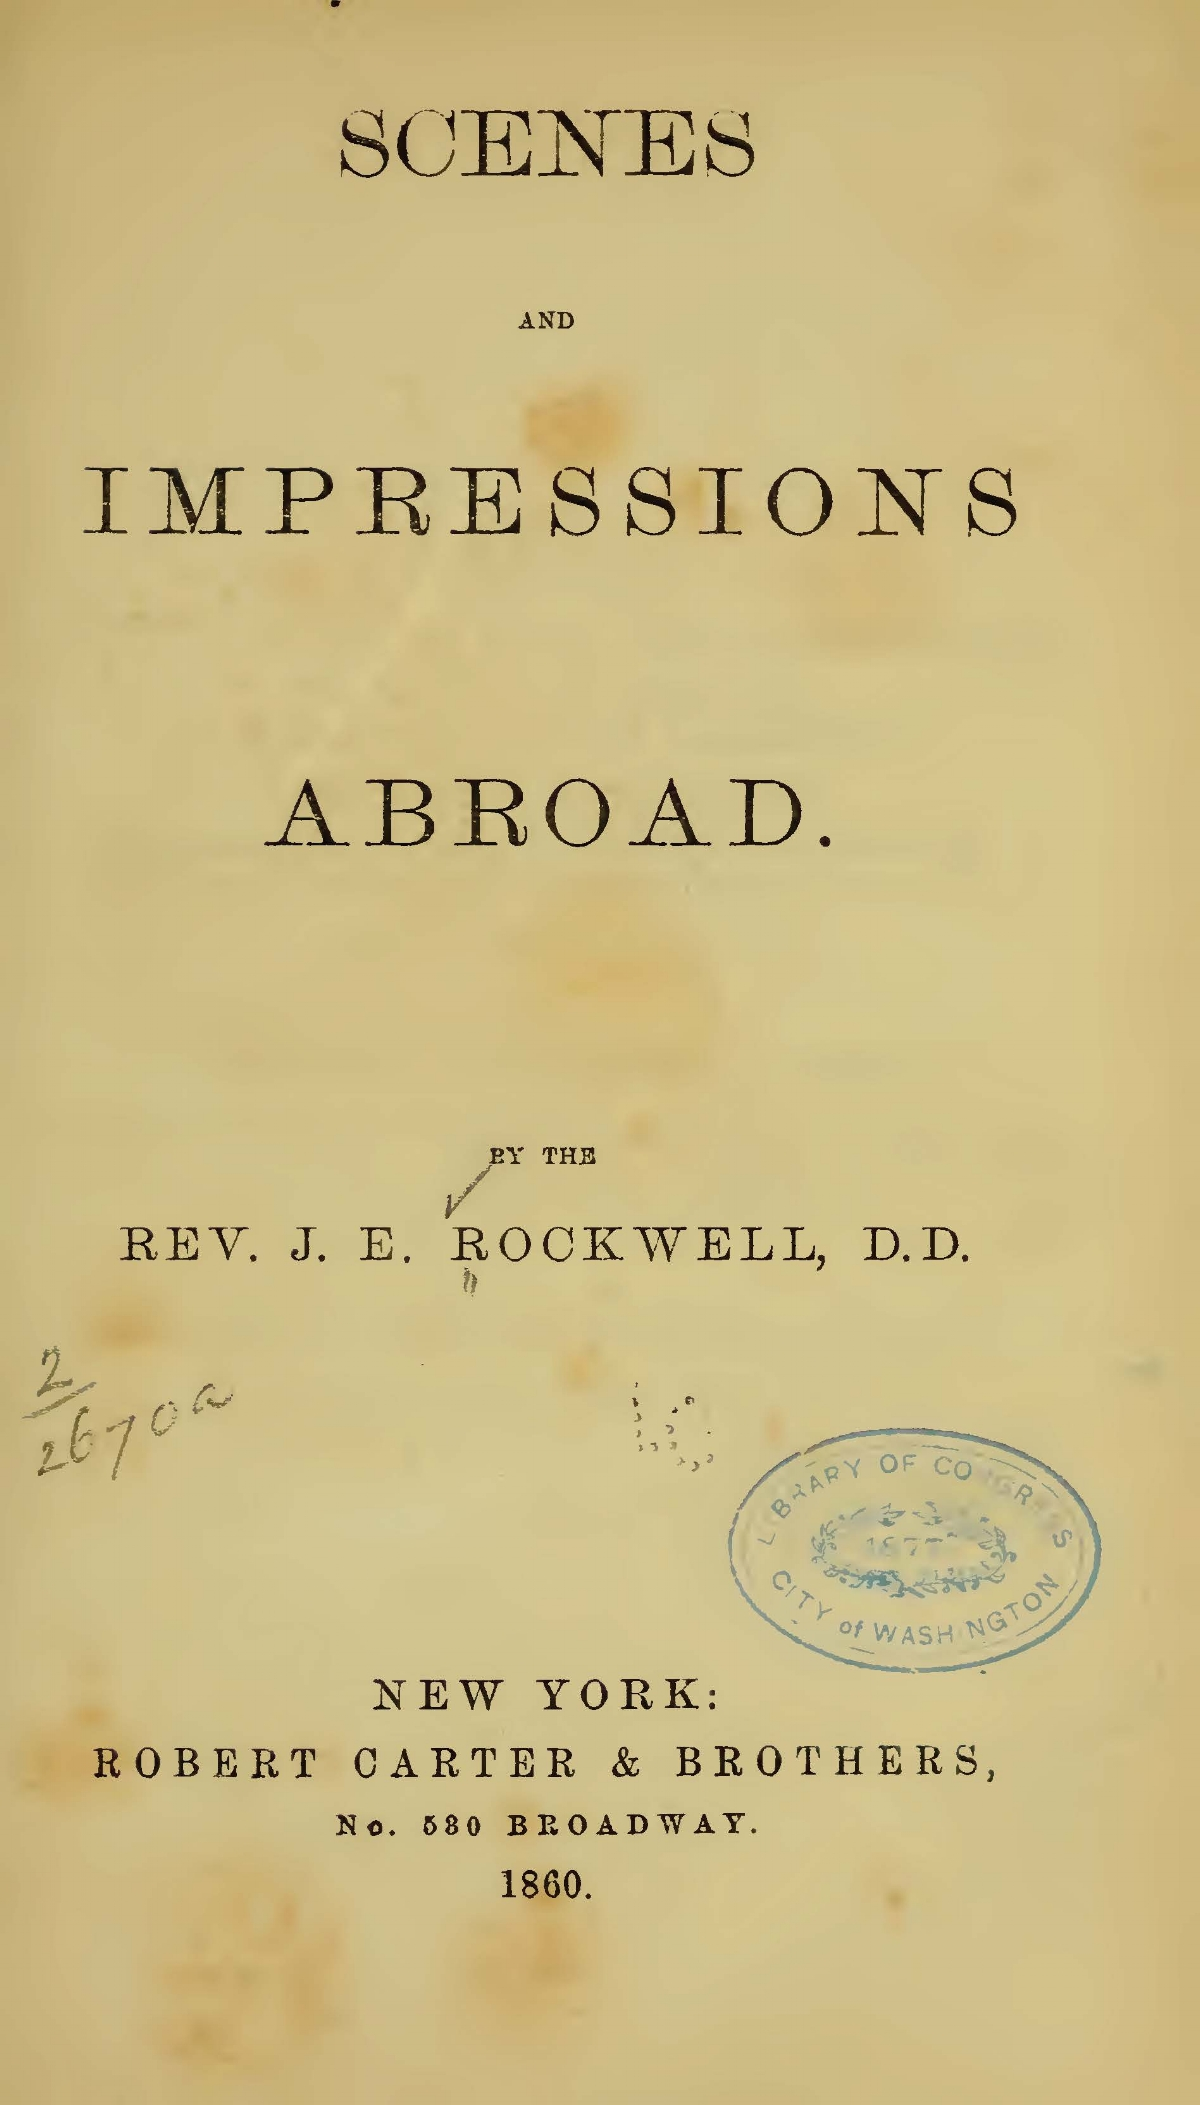 Rockwell, Joel Edson, Scenes and Impressions Abroad Title Page.jpg